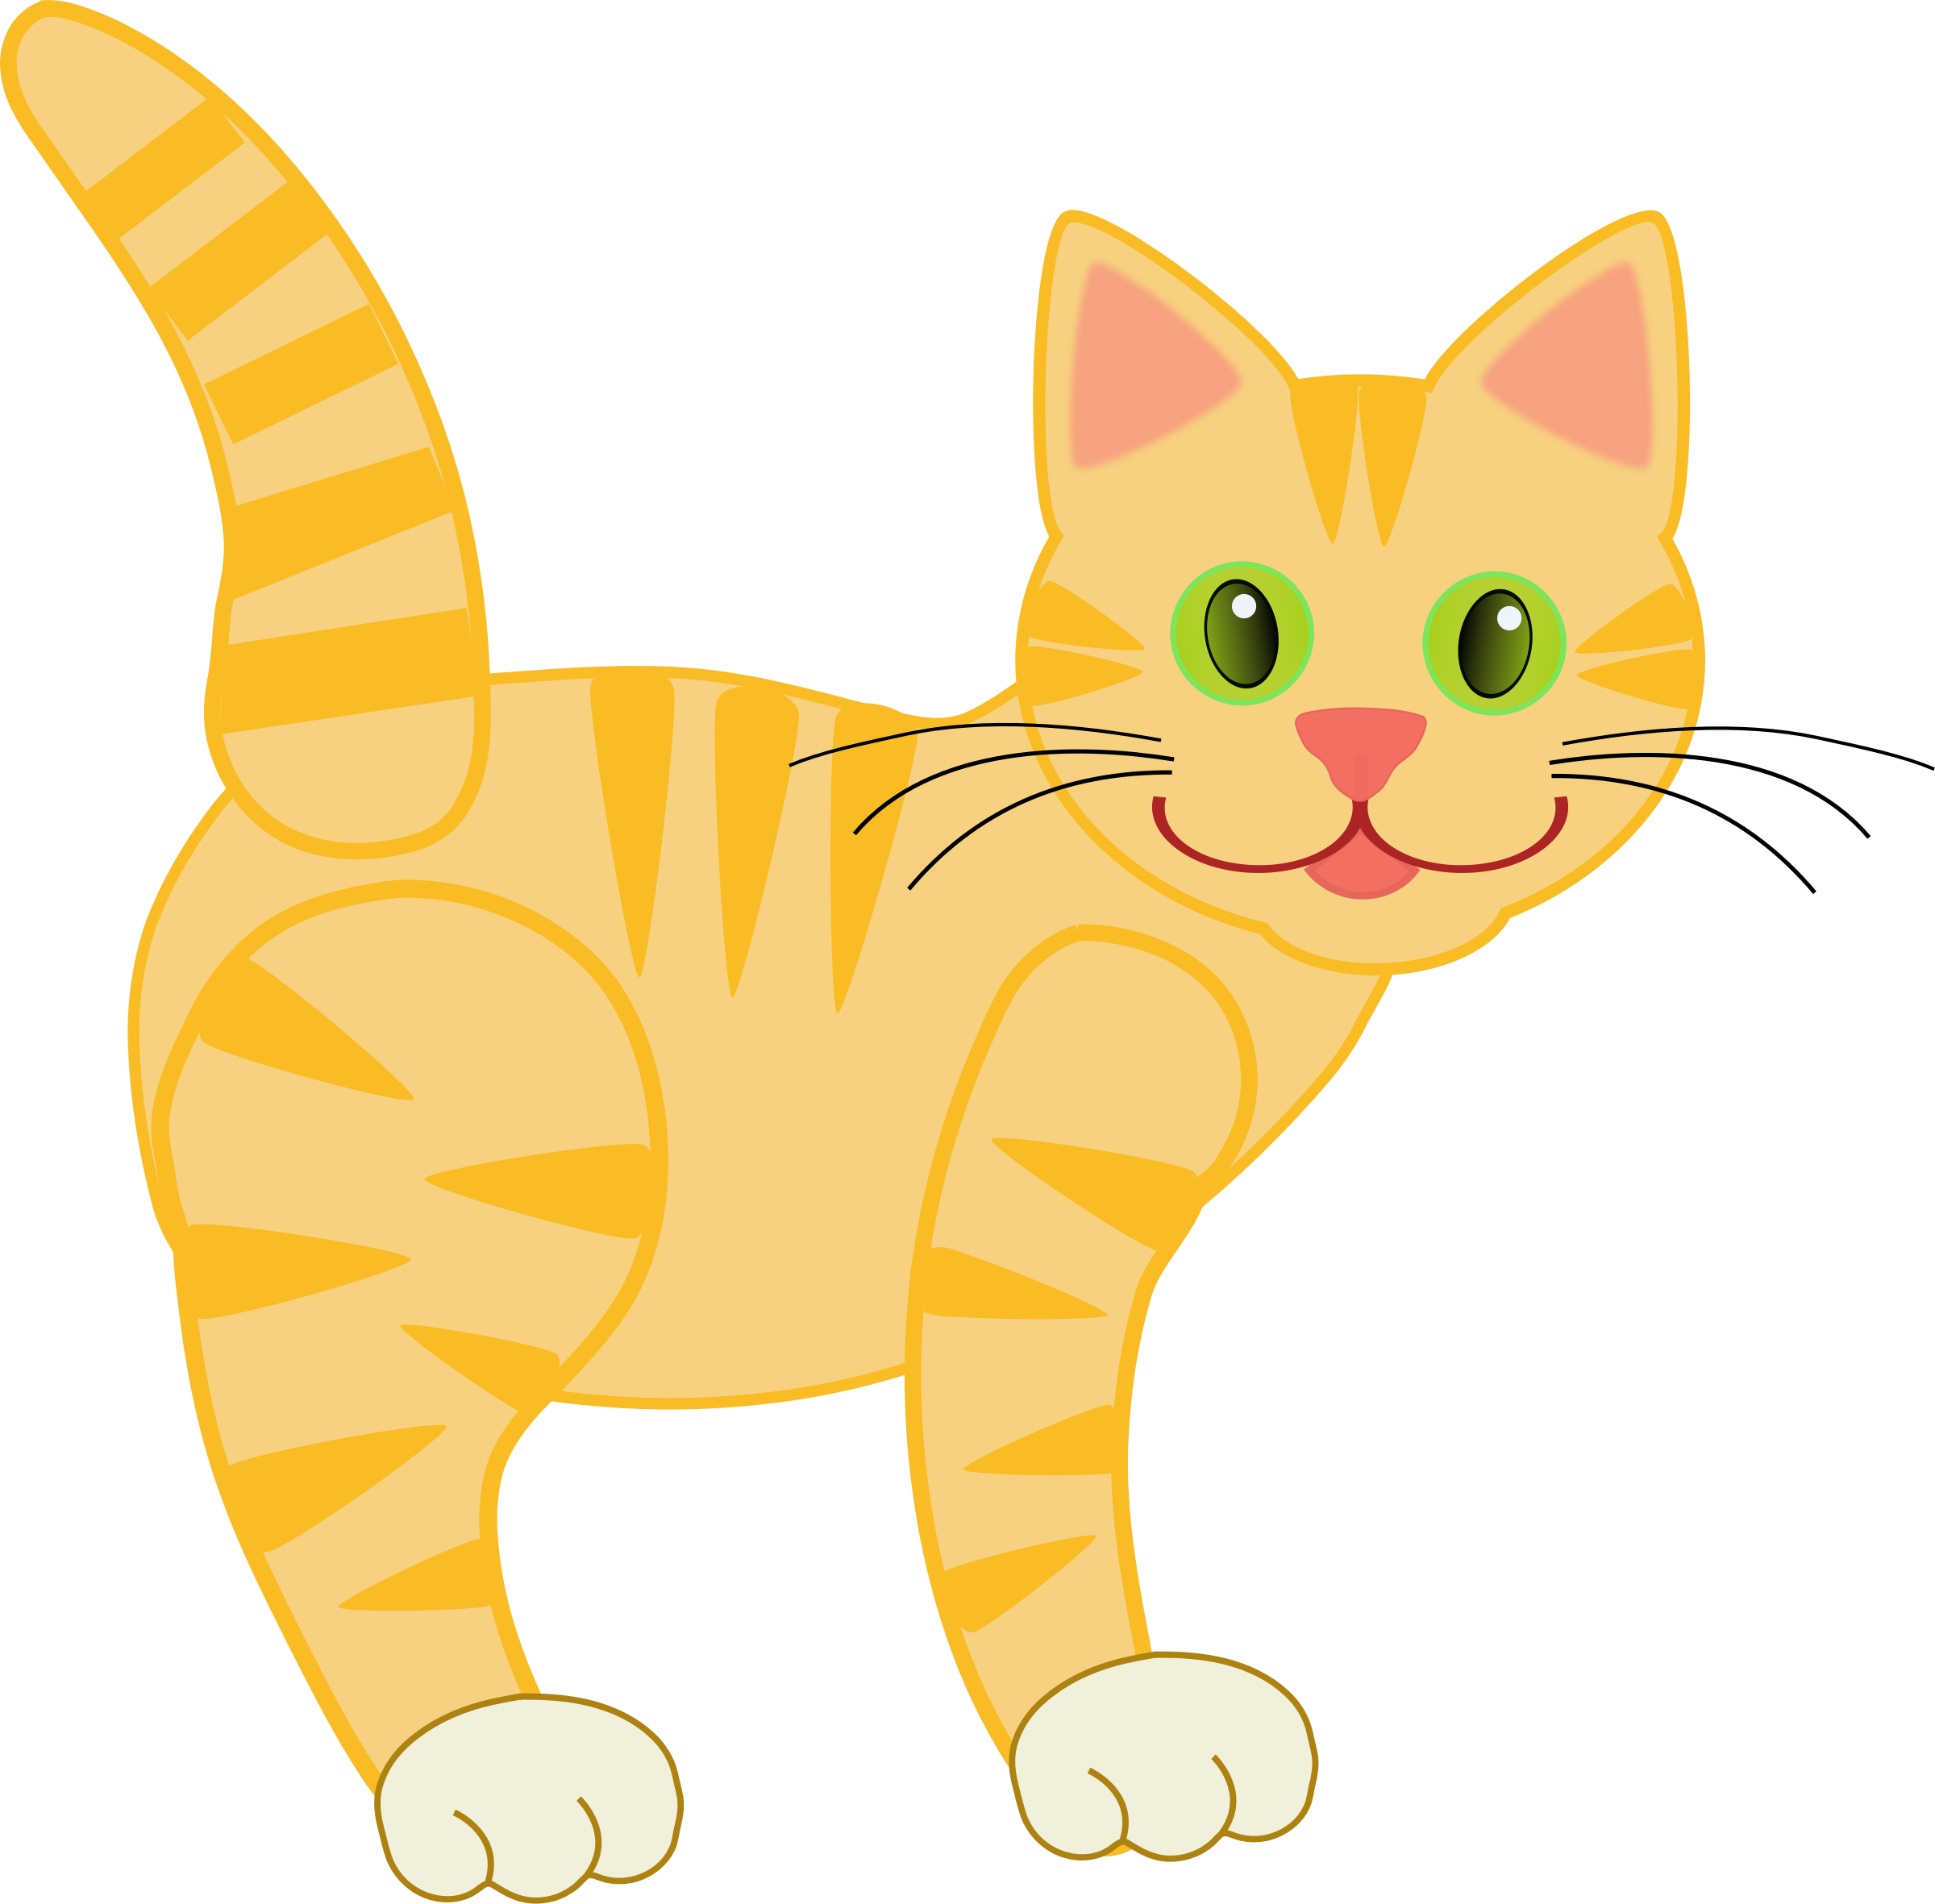 Royalty free cat clipart banner freeuse 28+ Collection of Yellow Cat Clipart | High quality, free cliparts ... banner freeuse